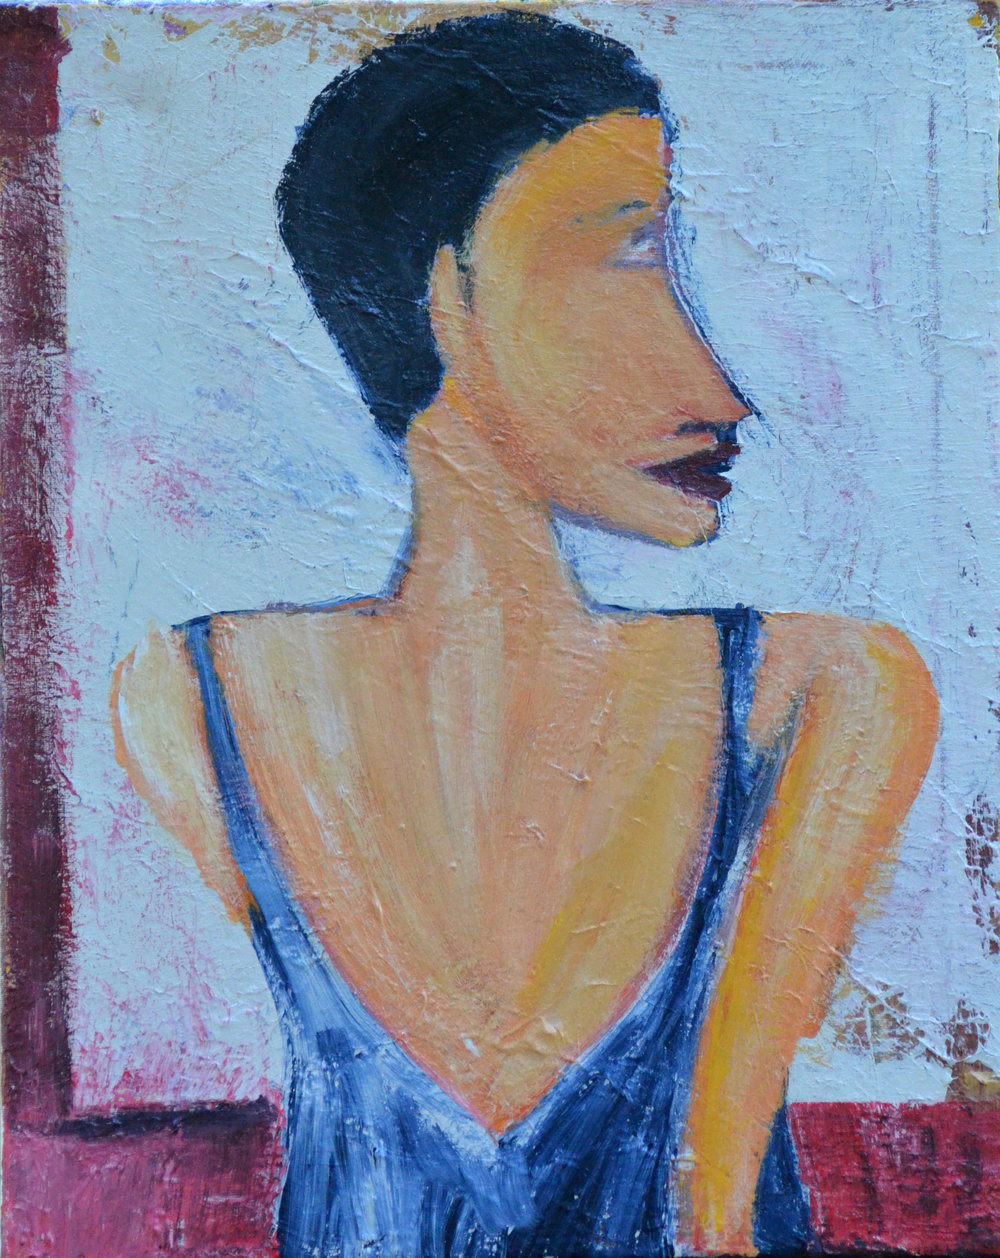 Woman in Blue Dress (2016, acrylic, 16 by 20)